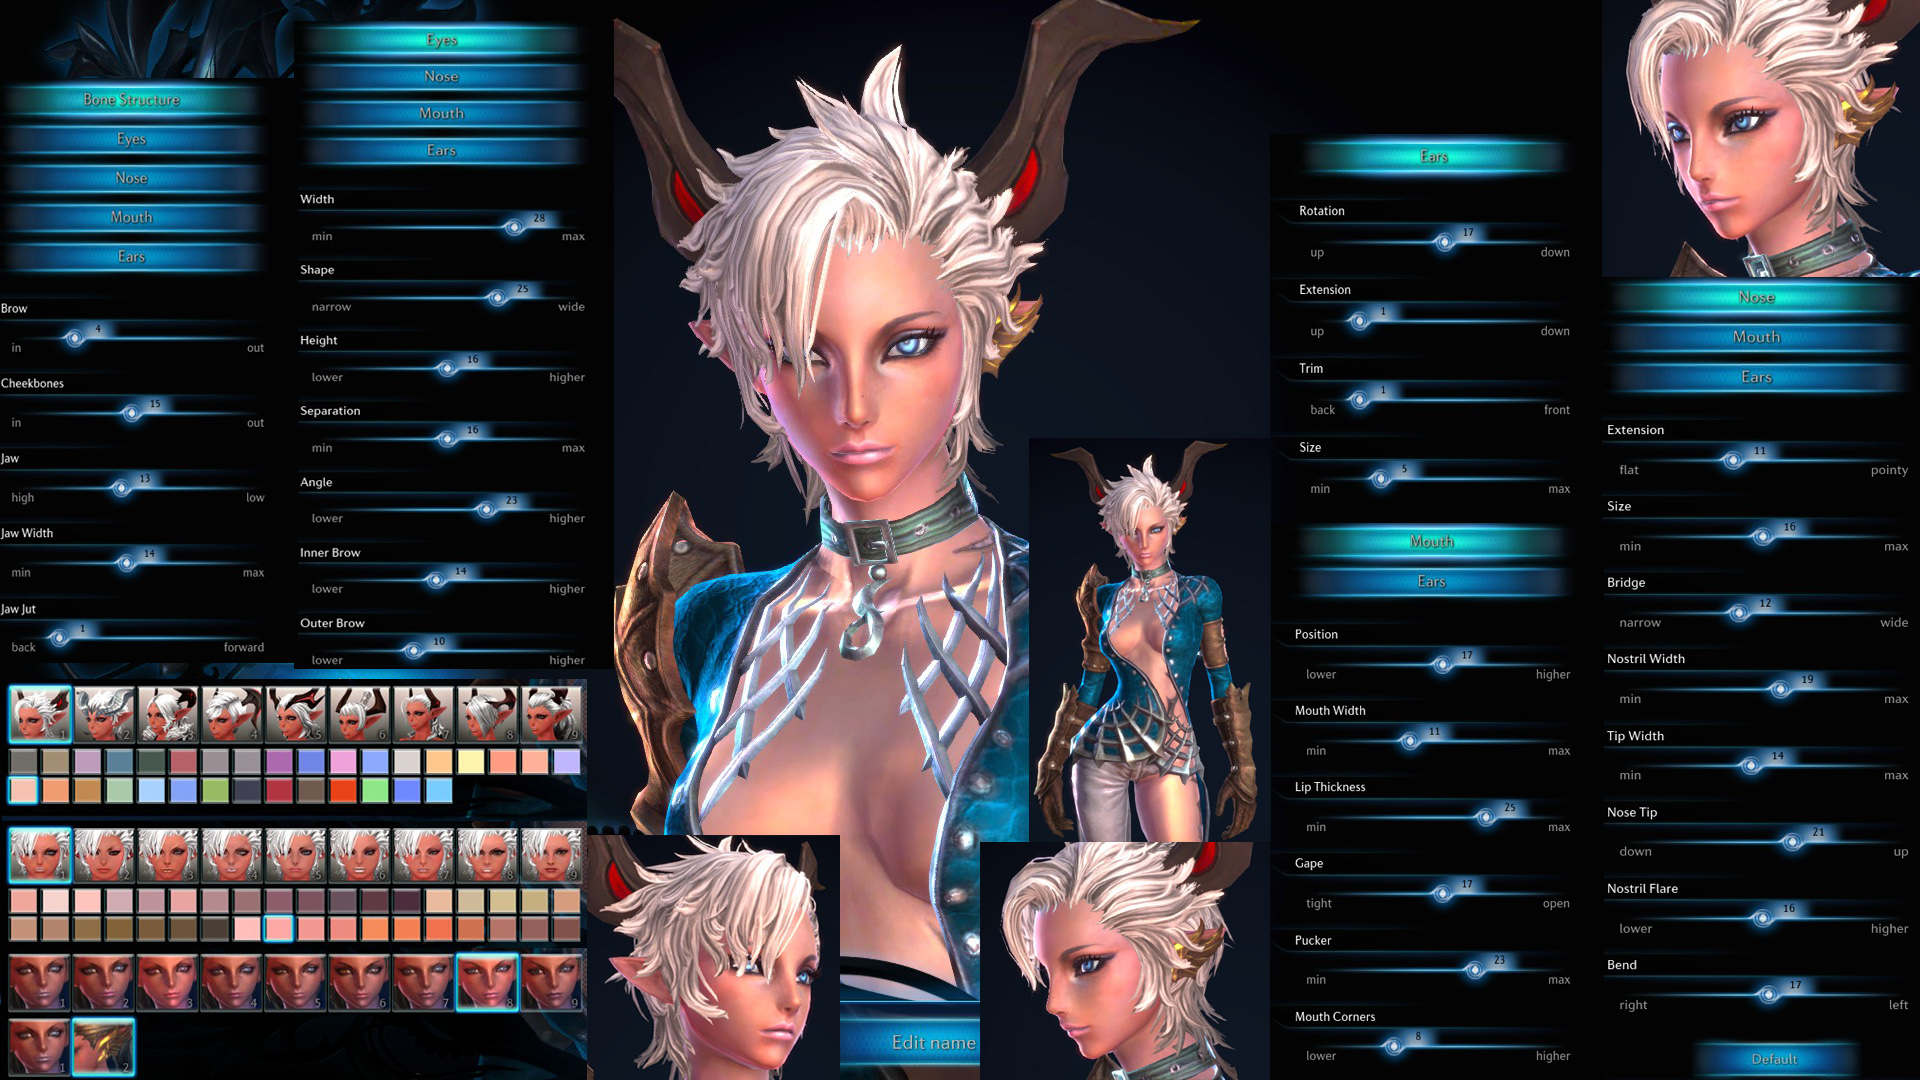 meresgi games first their spell under fallen havent those elins great some just guess might that thread sliders liked faces